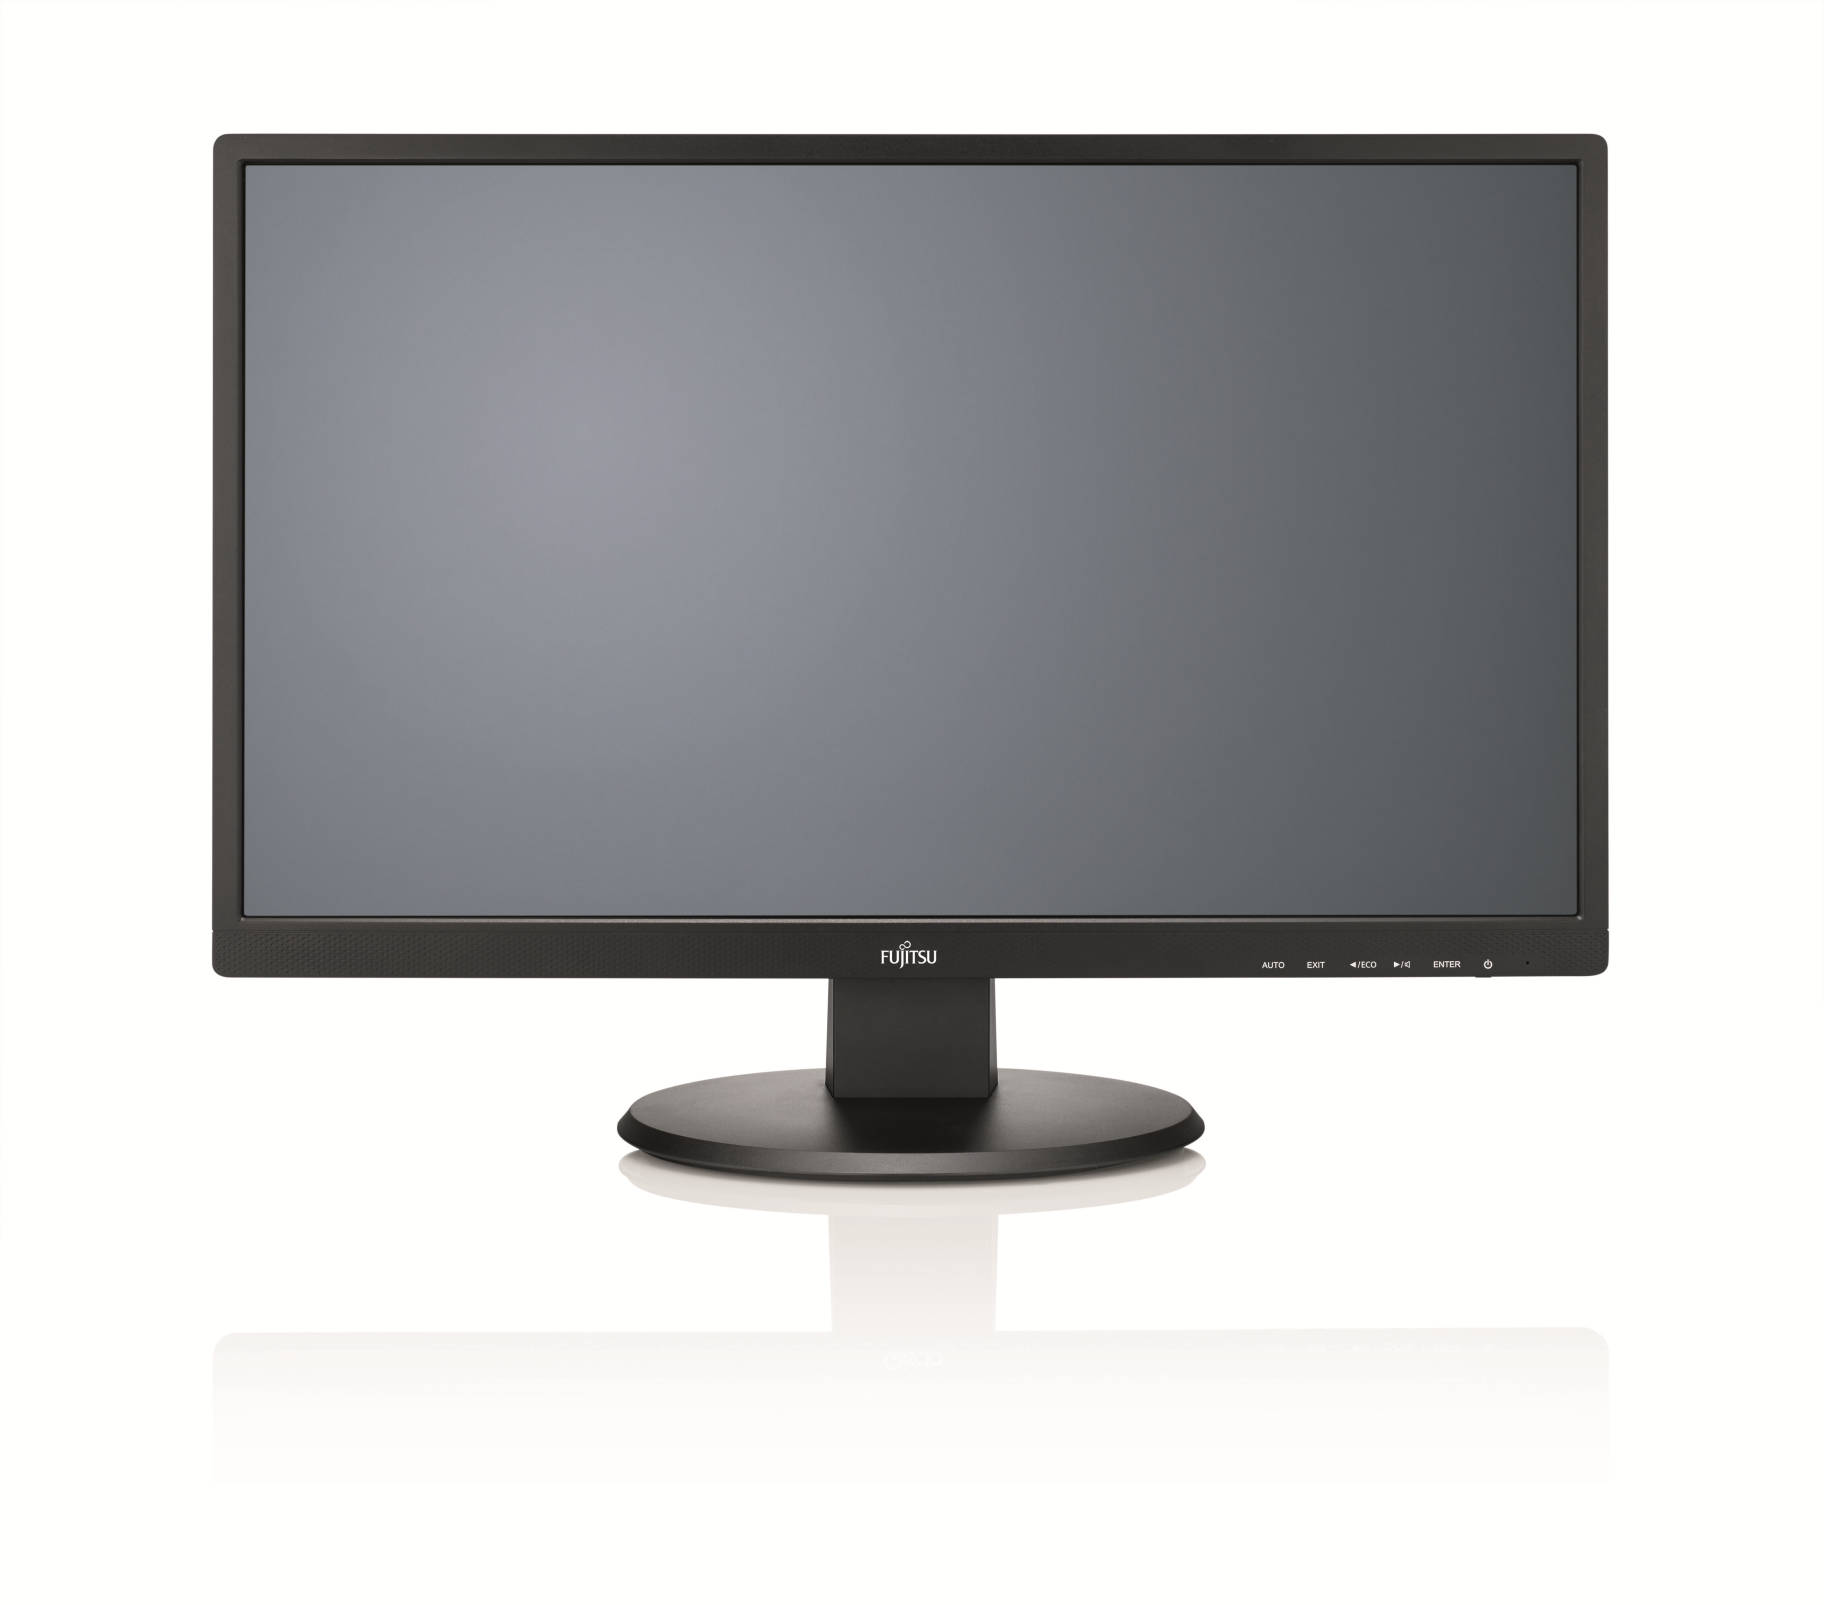 Fujitsu 24´´ E24T-8 PRO IPS 1920 x 1080/IPS/20M:1/5ms/250cd/VGA/DVI/DP/black